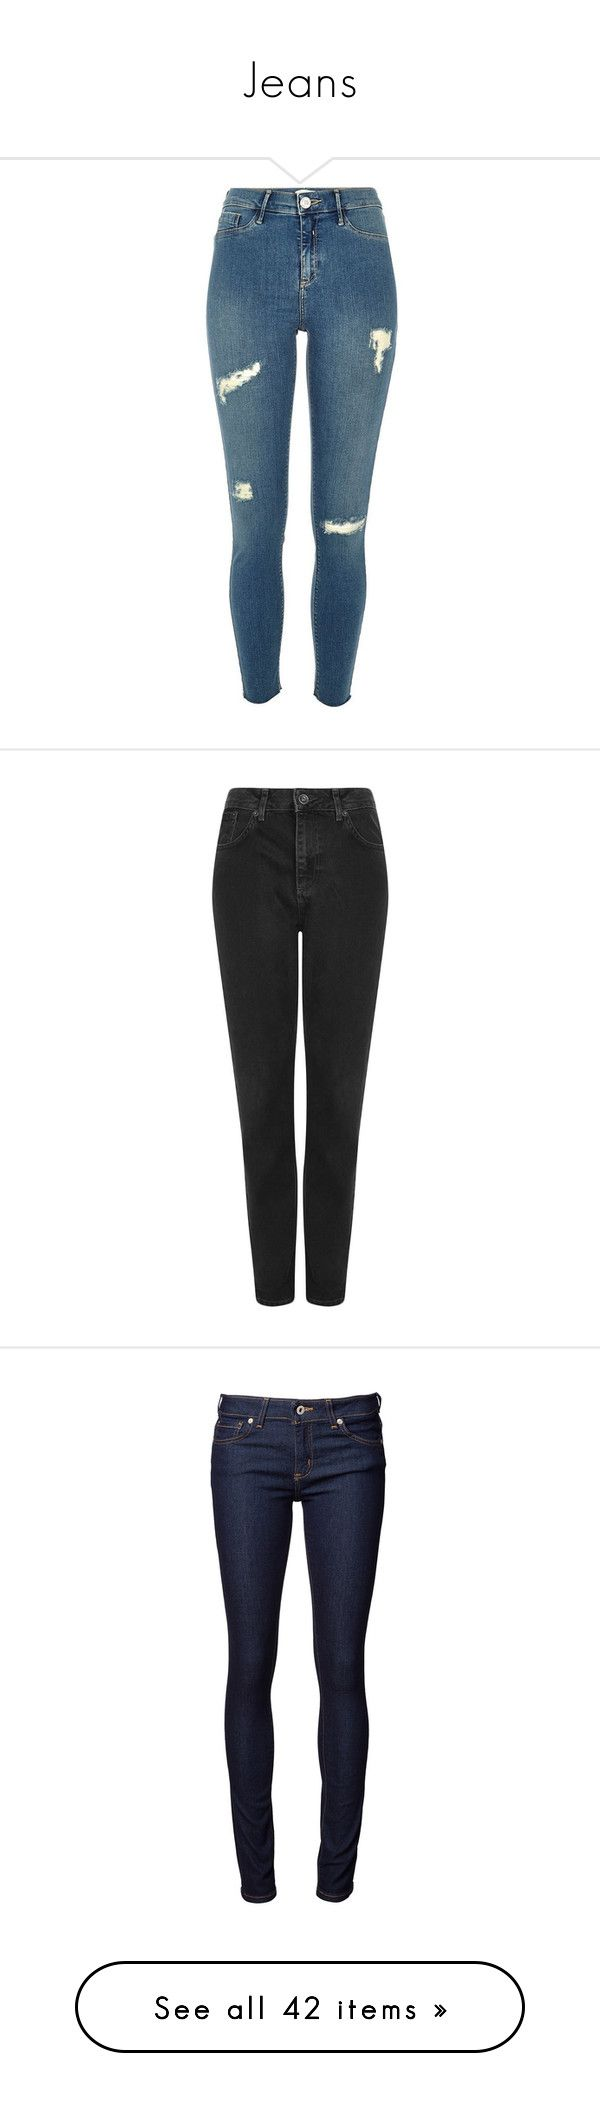 """""""Jeans"""" by cc-clarke ❤ liked on Polyvore featuring pants, jeans, bottoms, blue jeggings, tall leggings, tall pants, ripped leggings, blue leggings, trousers and black"""